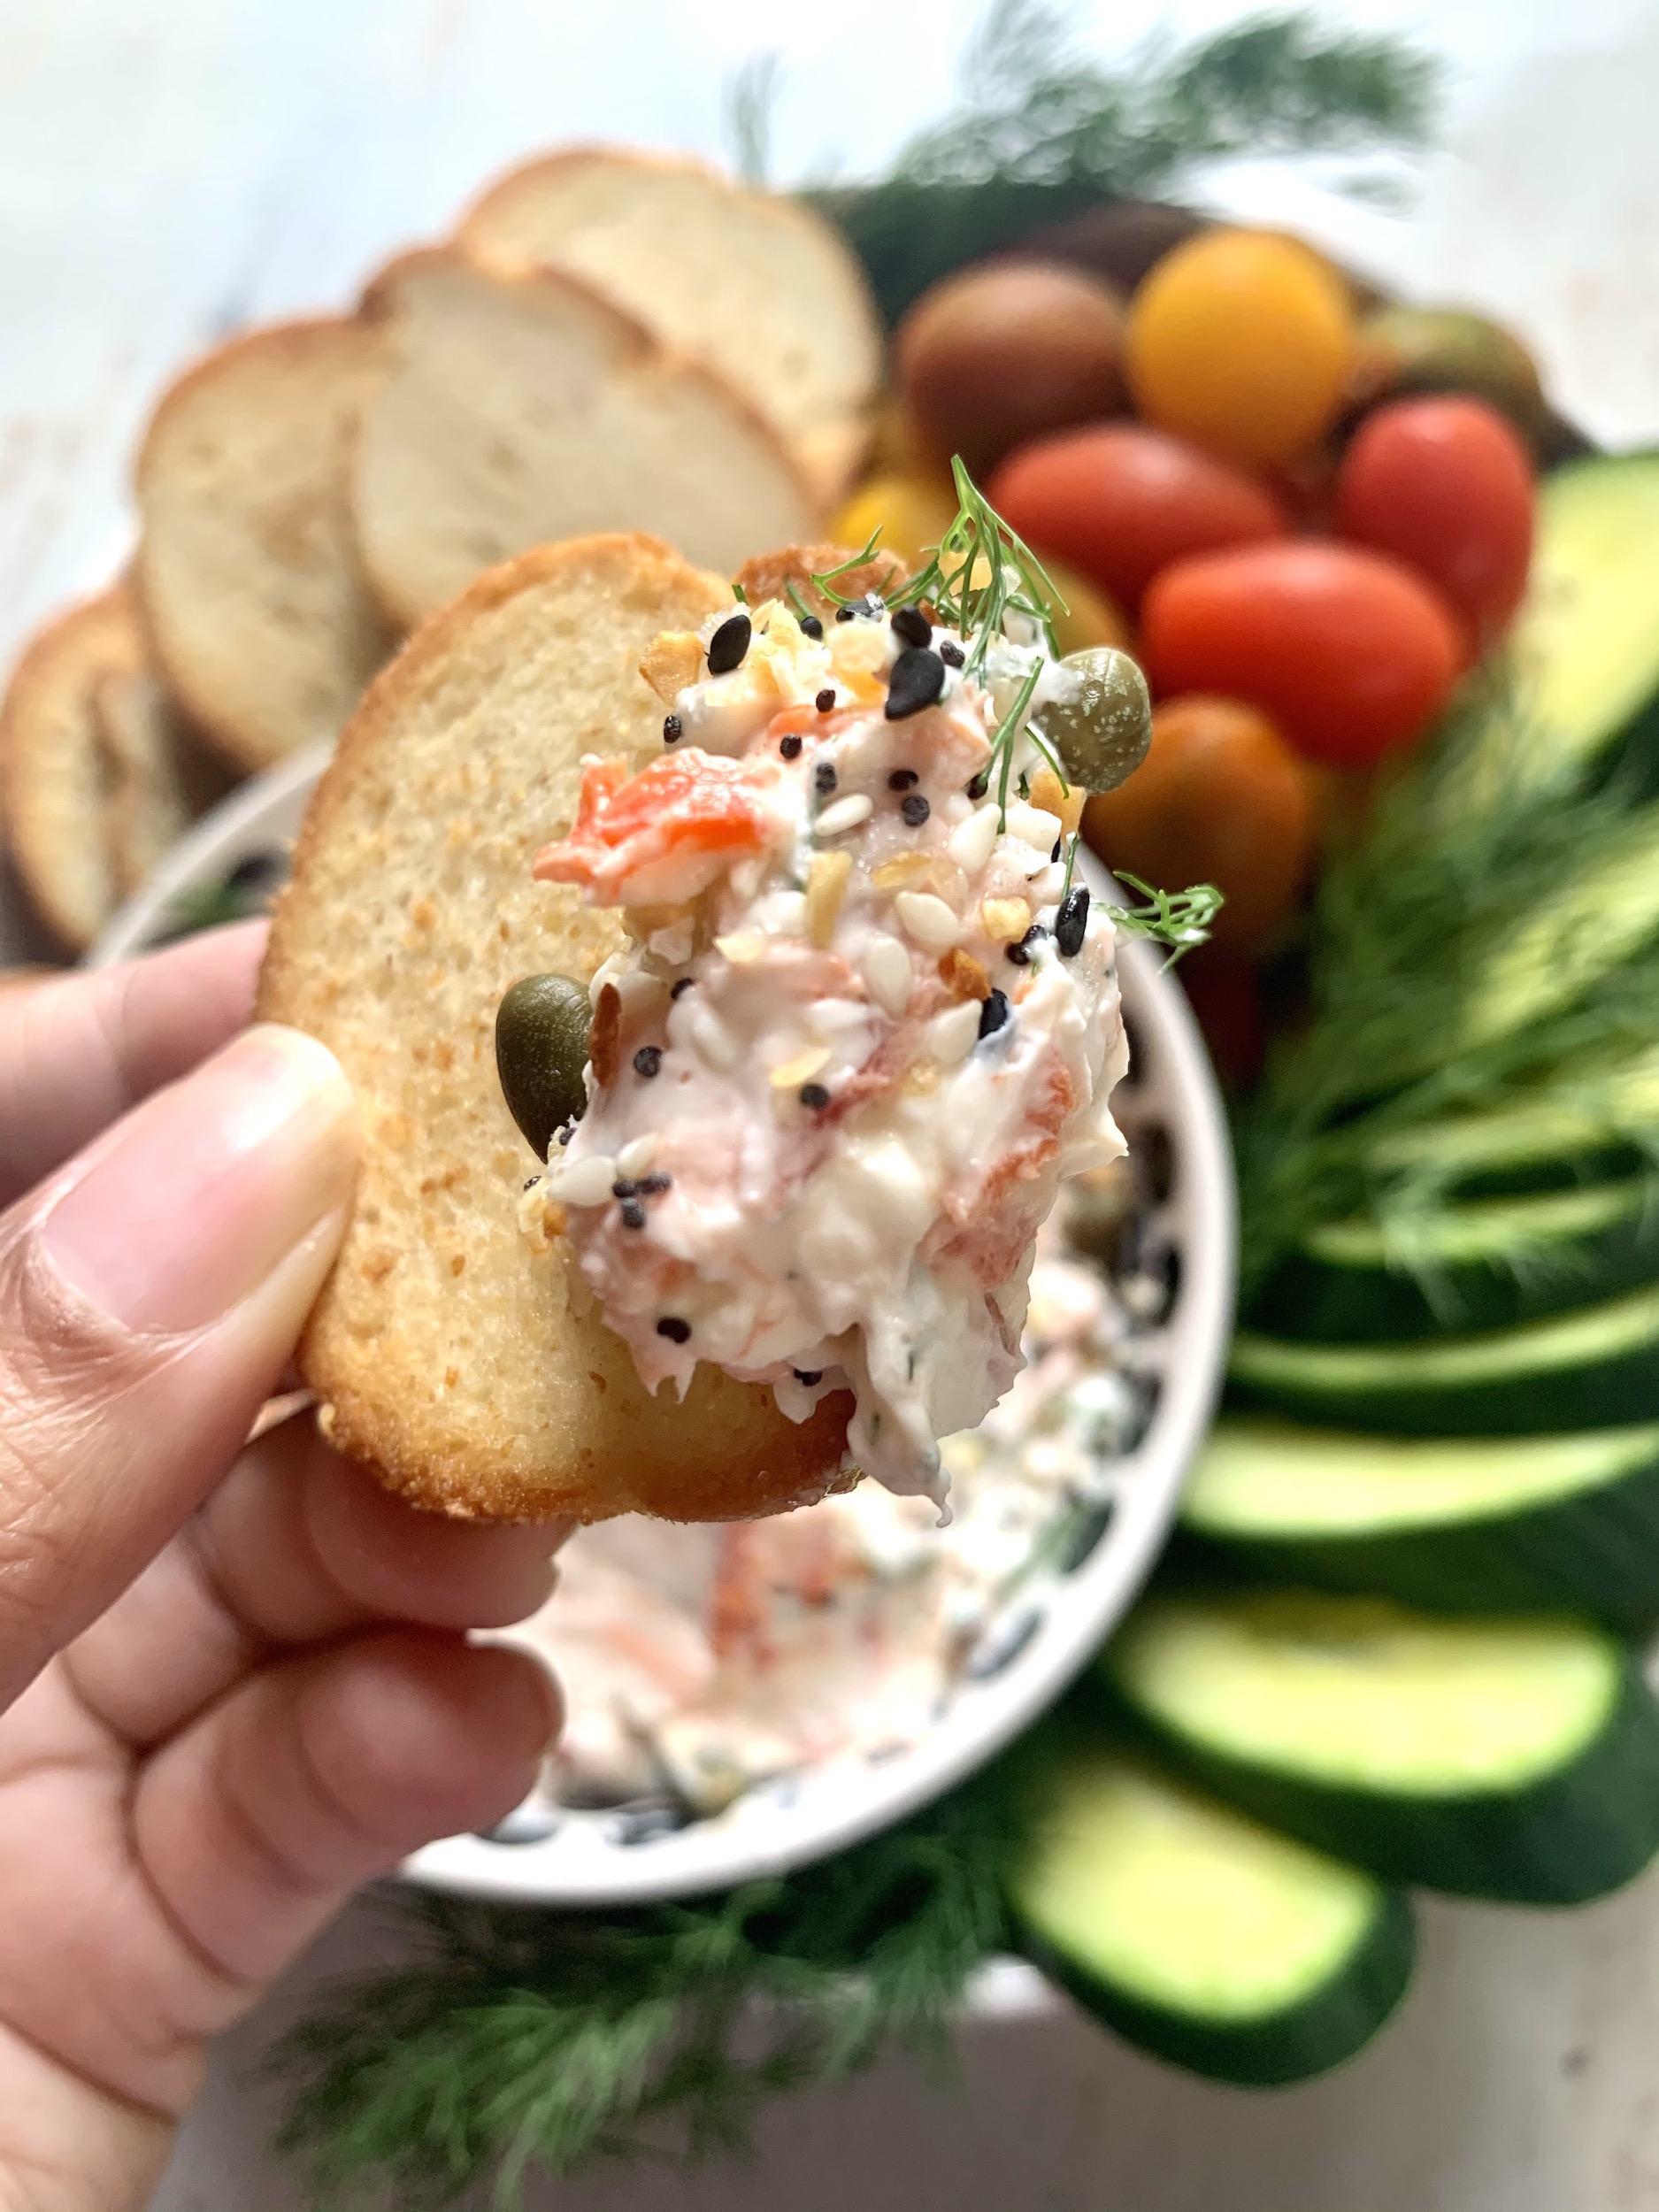 Hand holding bagel chip with smoked salmon spread. veggies and bagel chips in the background